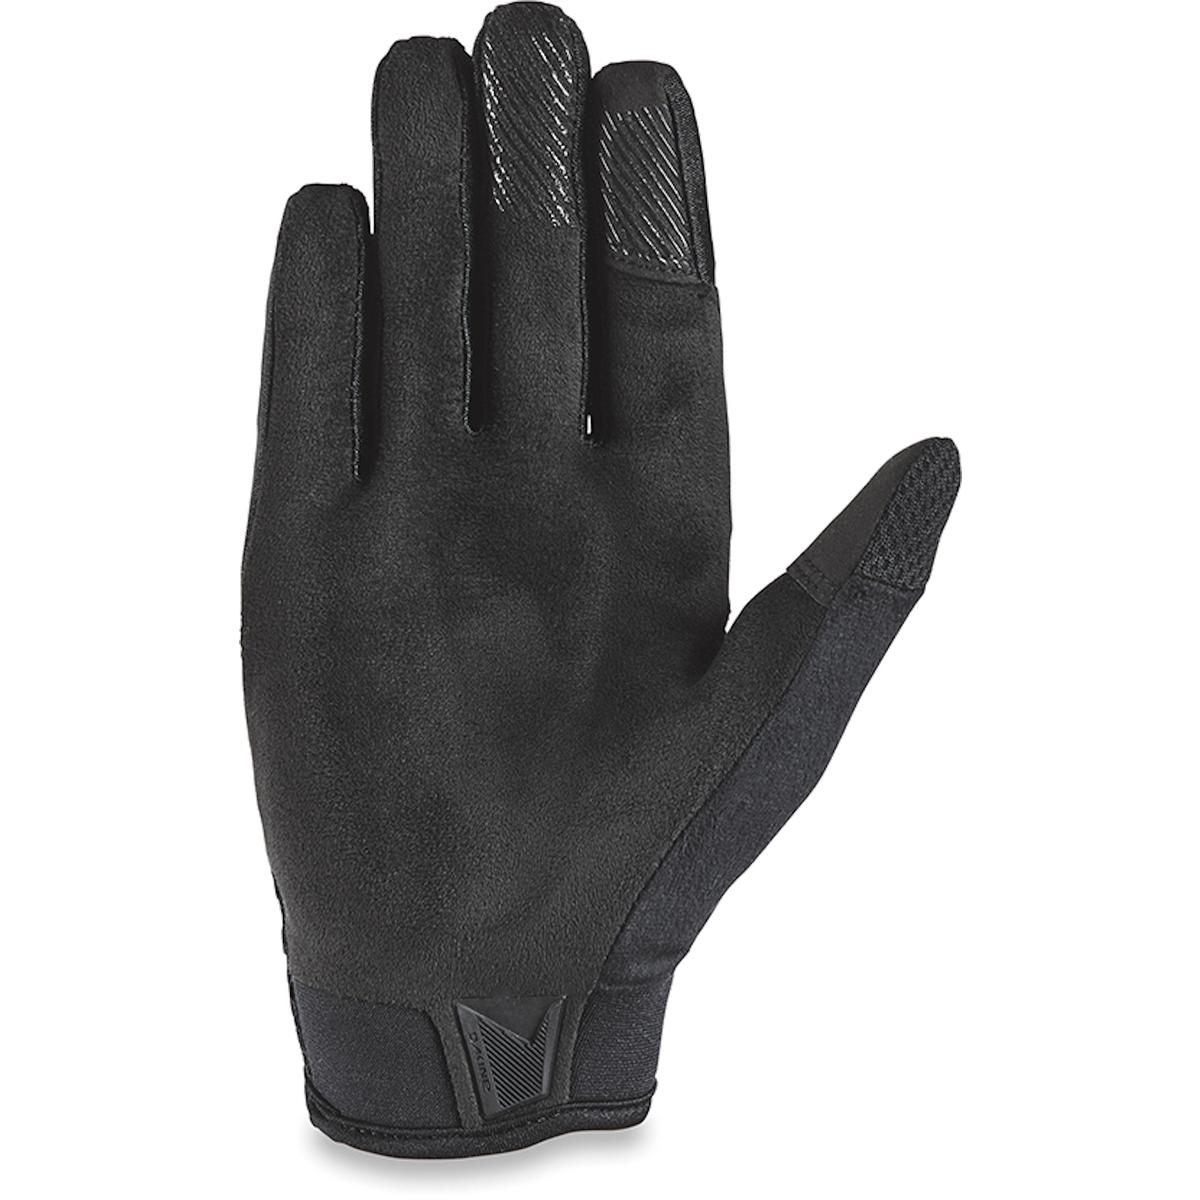 Dakine Covert Glove Women's Biking Glove